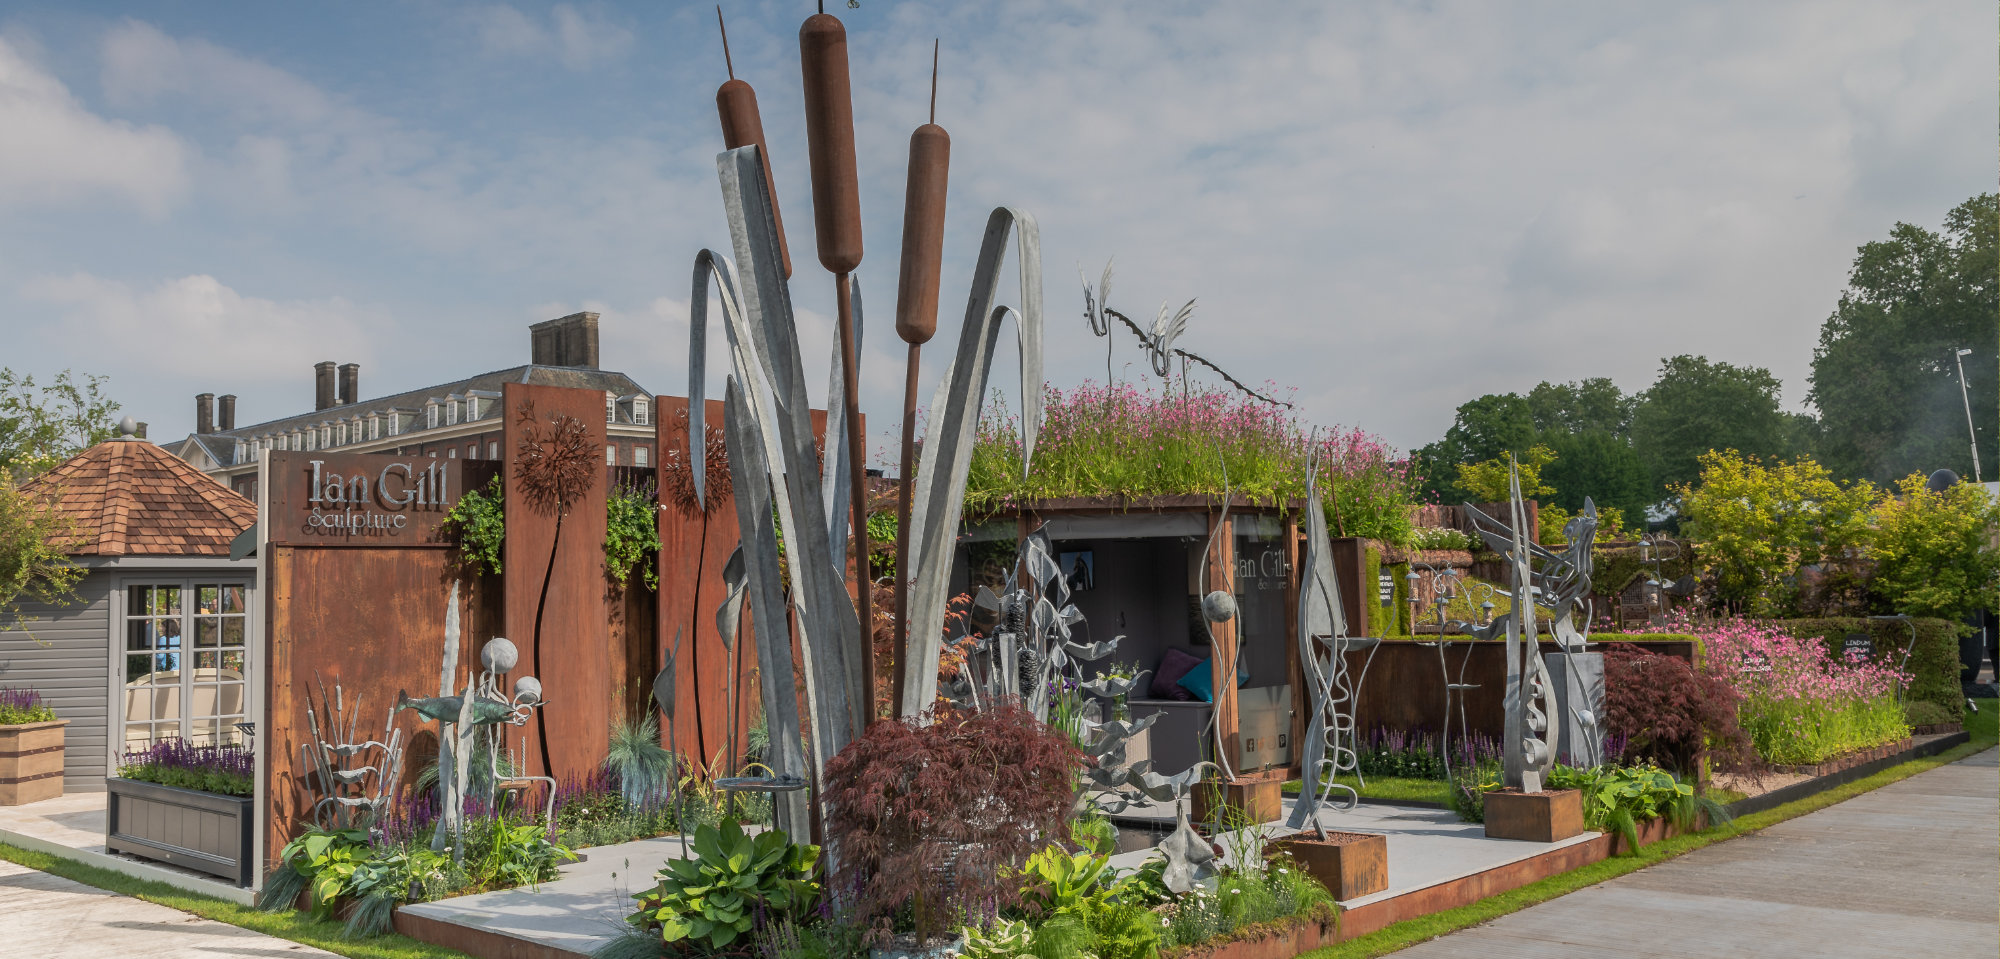 Ian Gill Sculpture display at Chelsea Flower Show